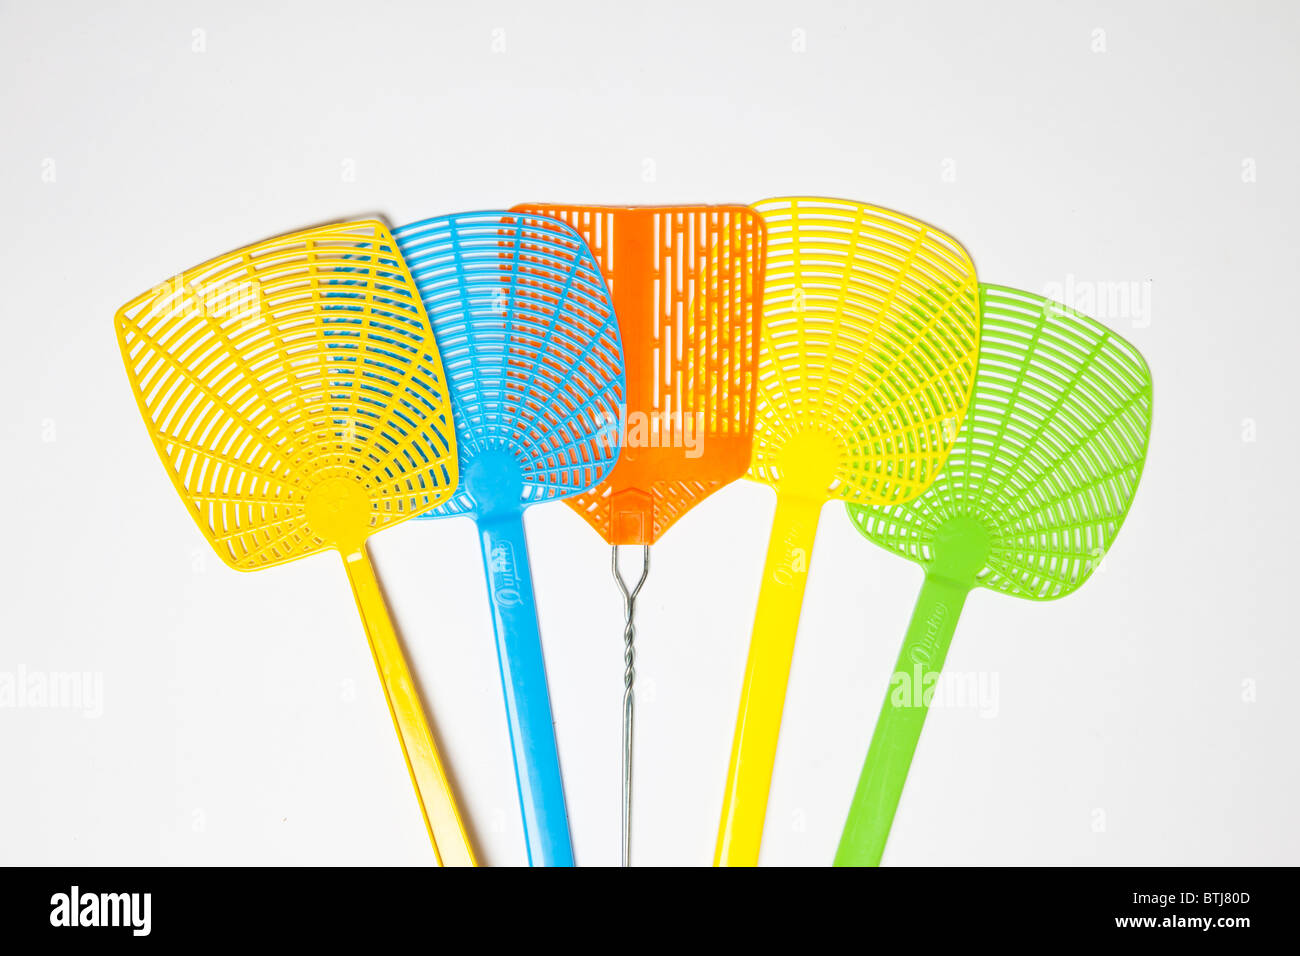 colorful plastic fly swatters - Stock Image